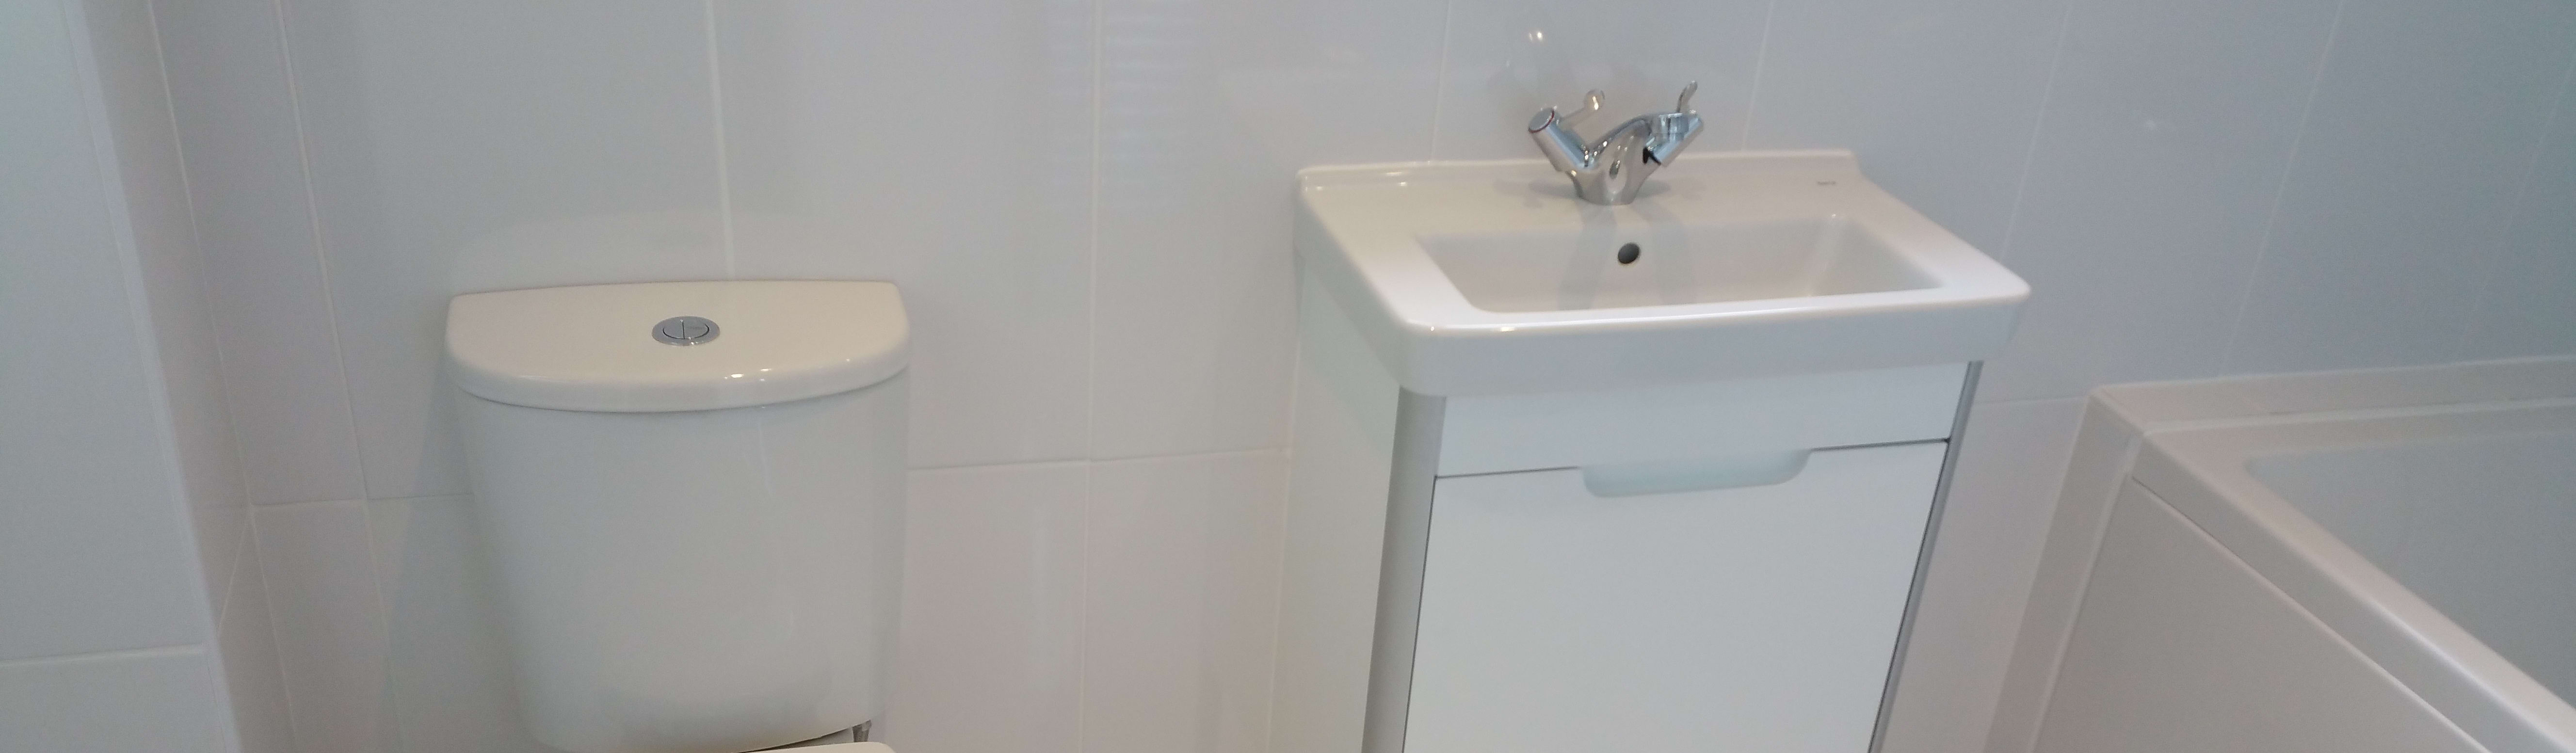 Small bathroom installation por replace your bathroom homify for 0 bathroom installation